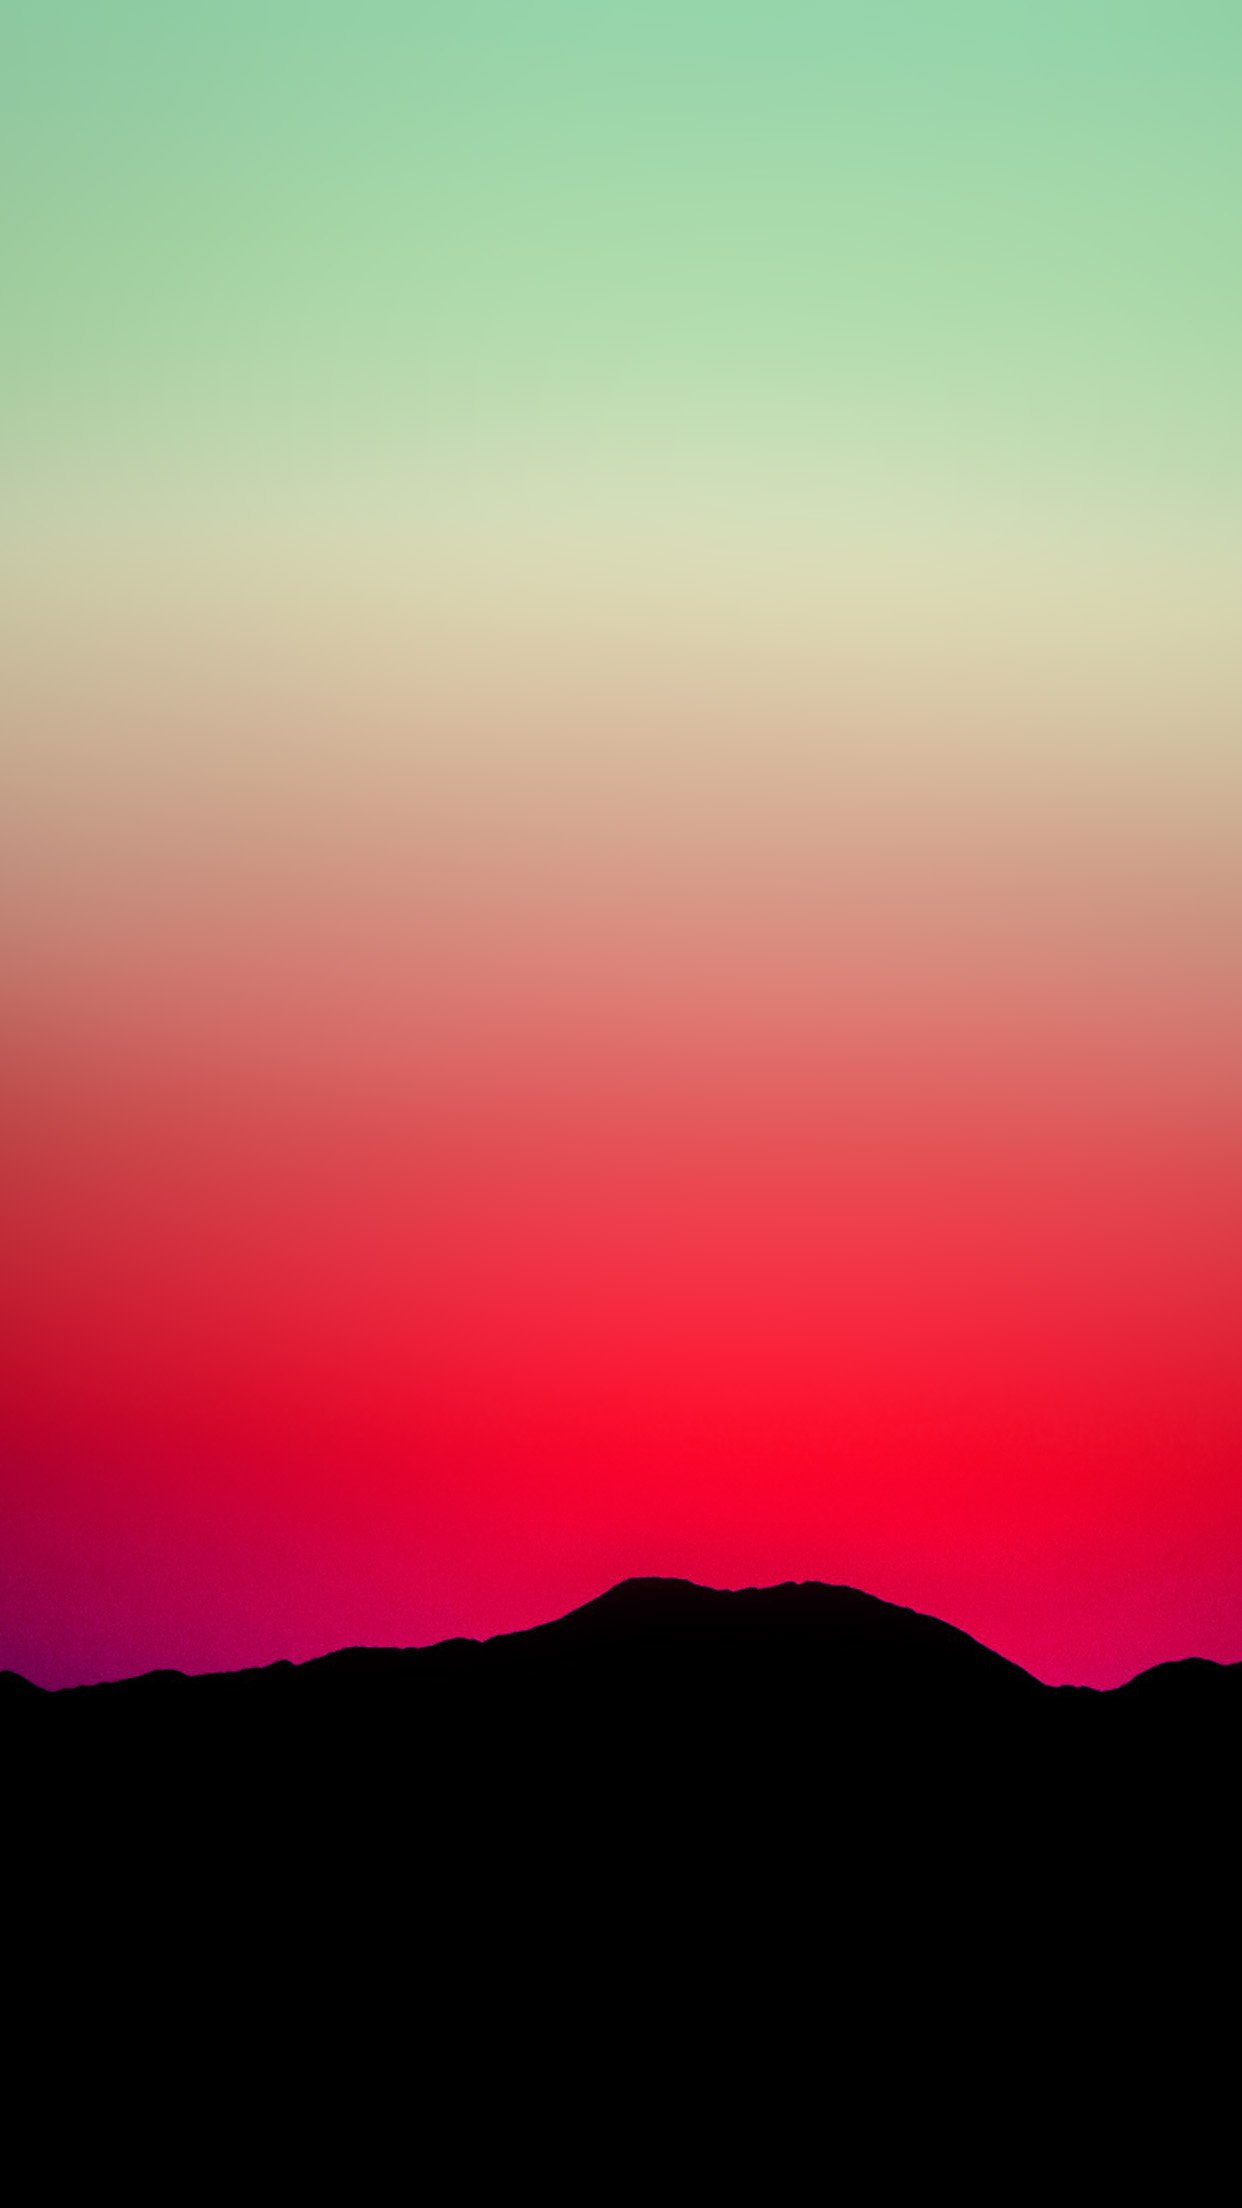 Sunset Sky Minimal Nature Red Green Android wallpaper